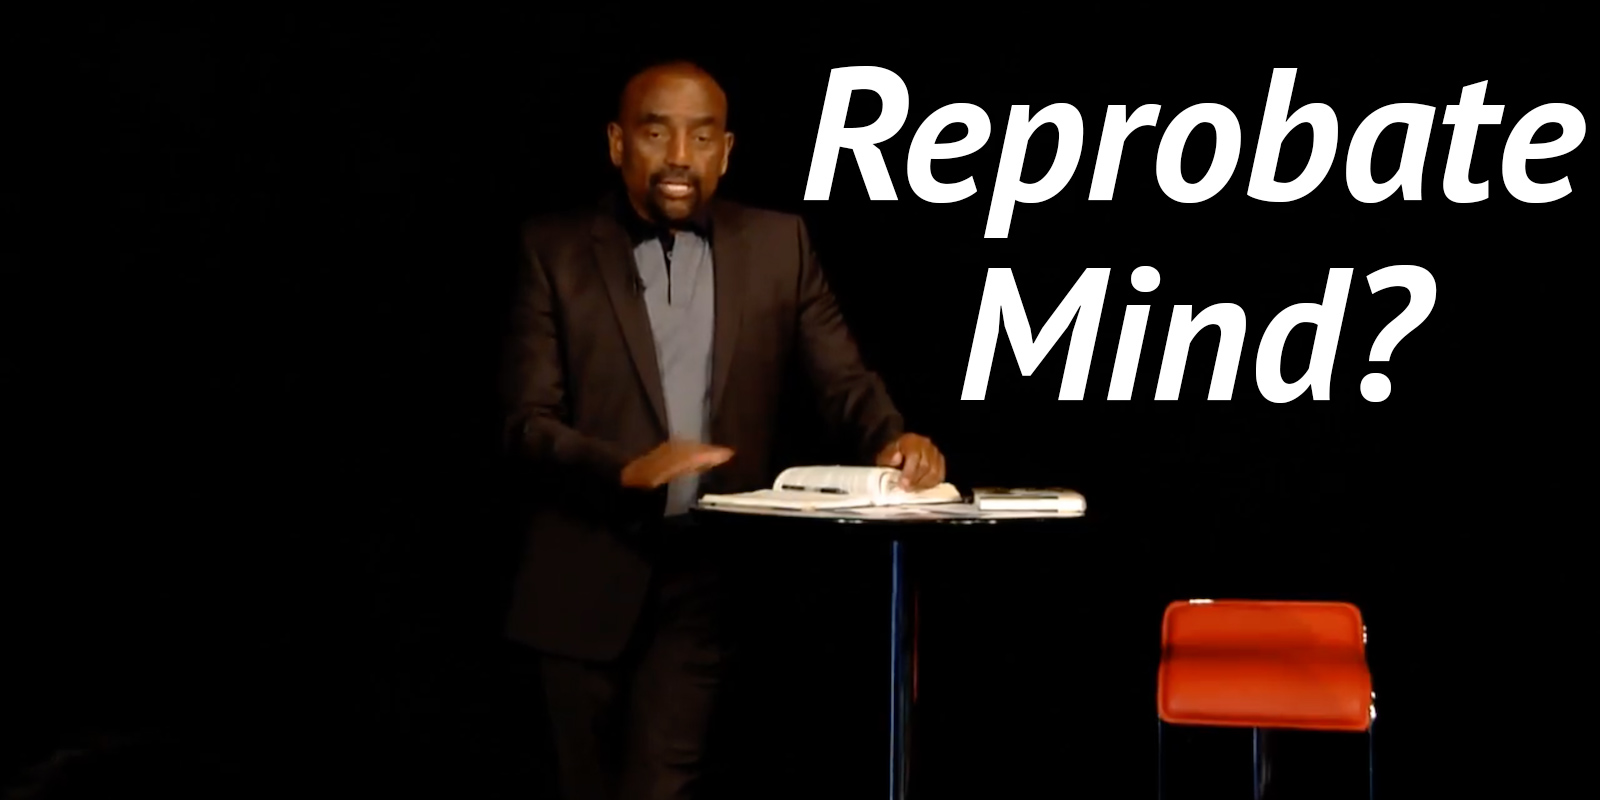 Jesse talks about what it means to have a reprobate mind